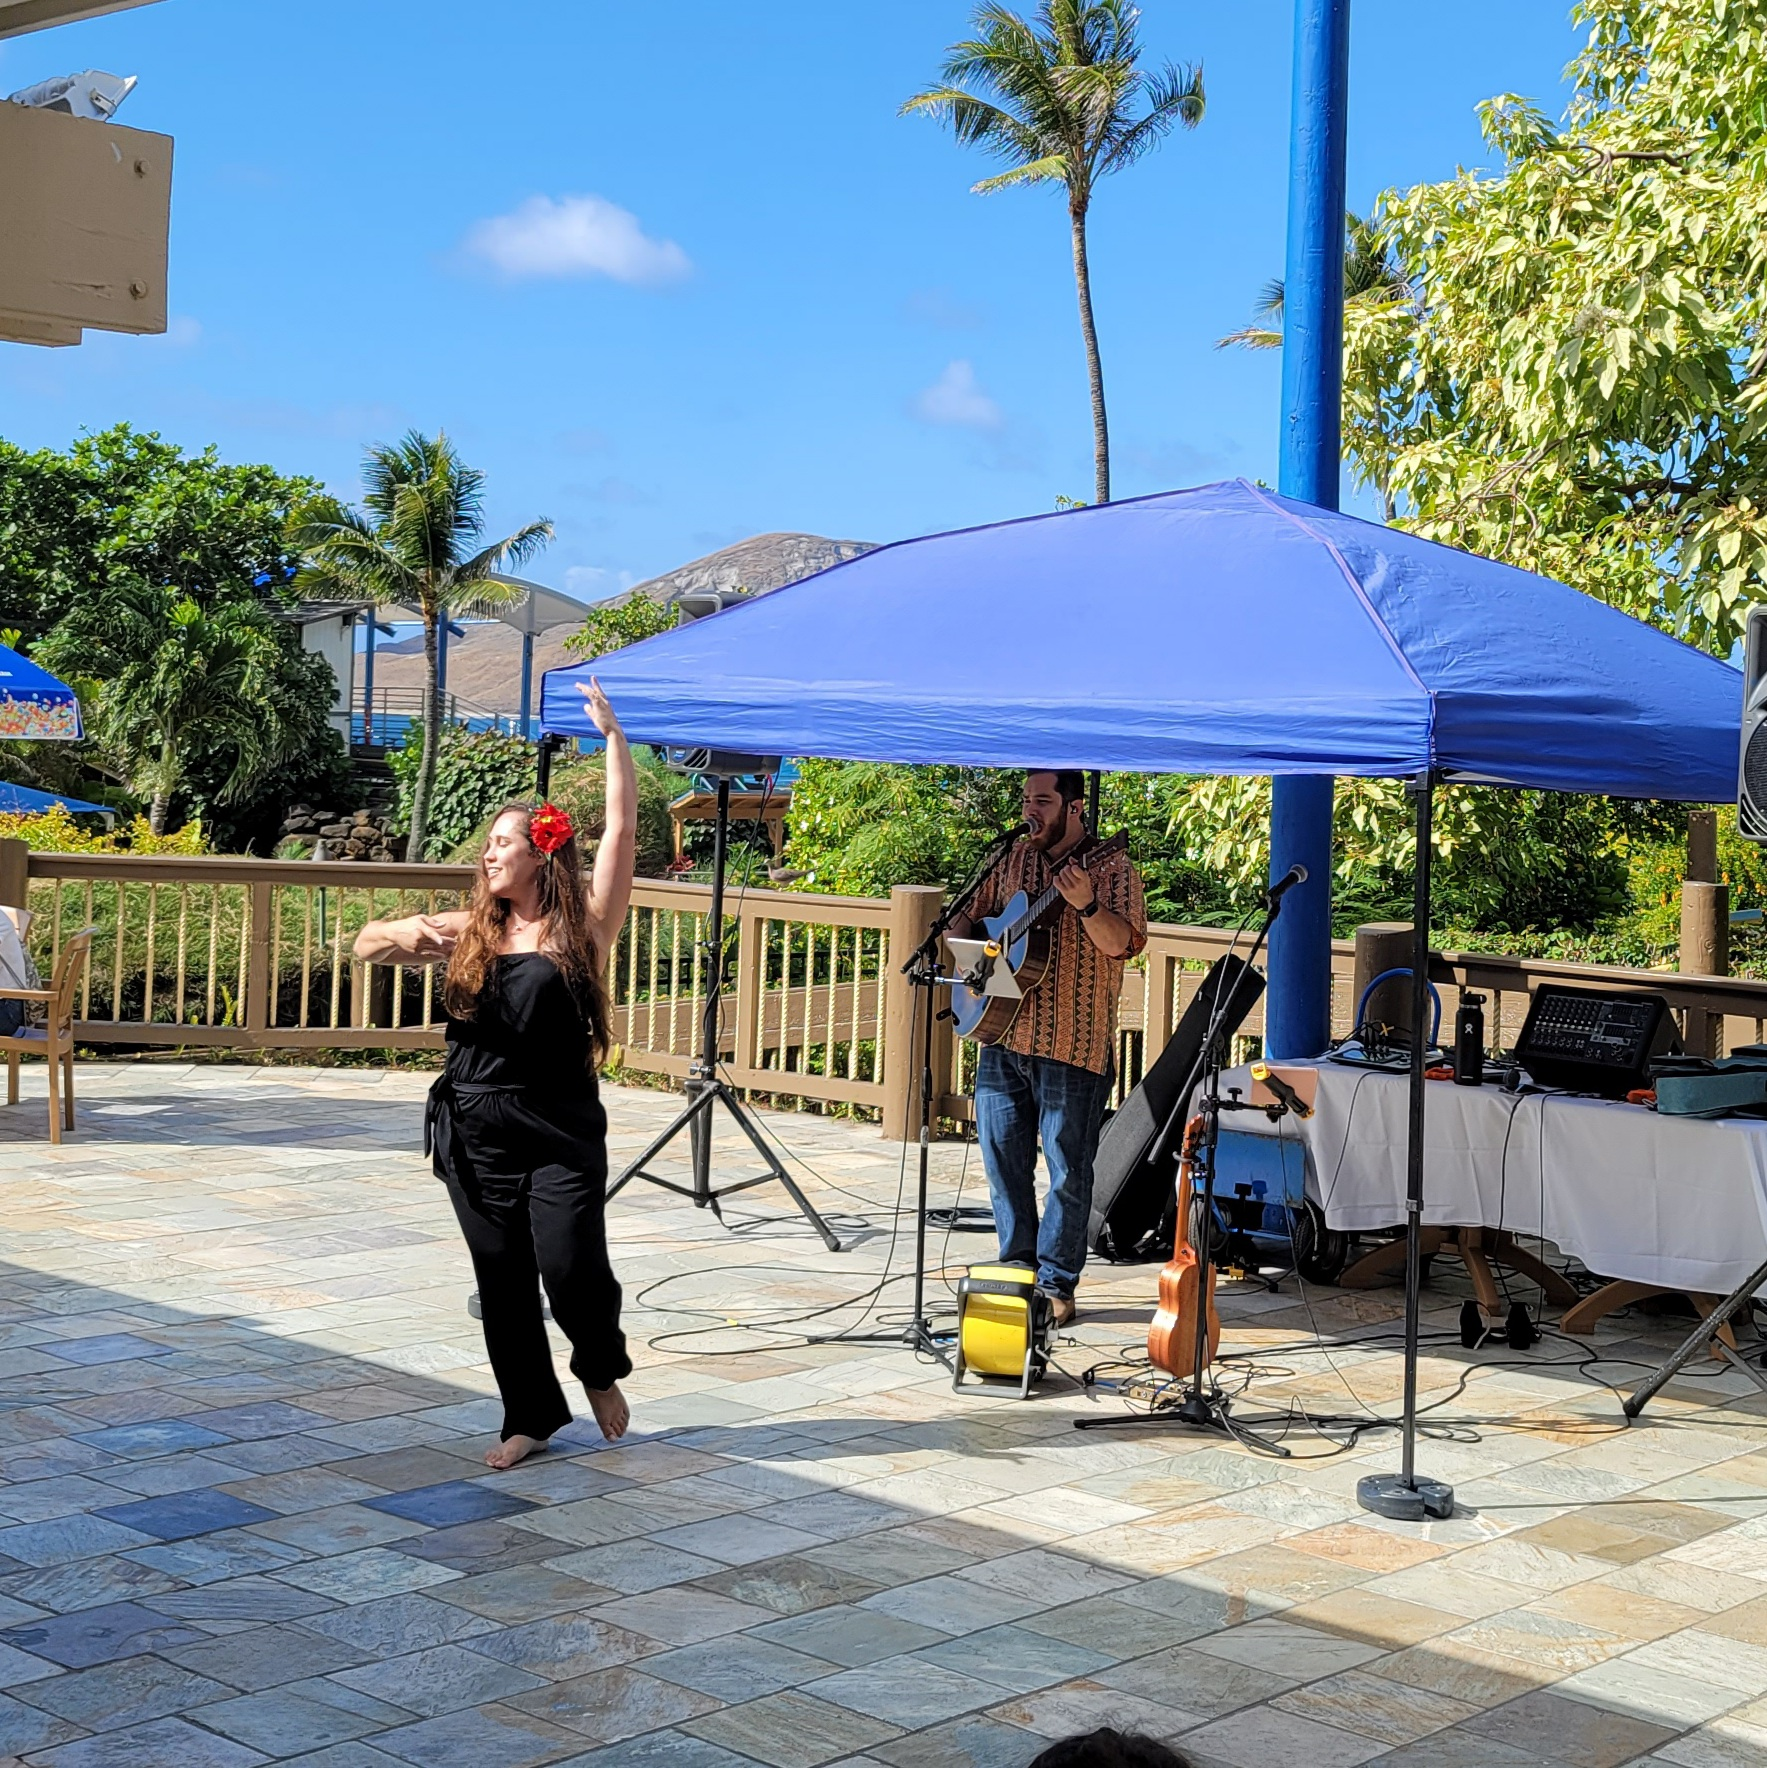 Kailua Moon performing at the Cafe with Manana Island in the background